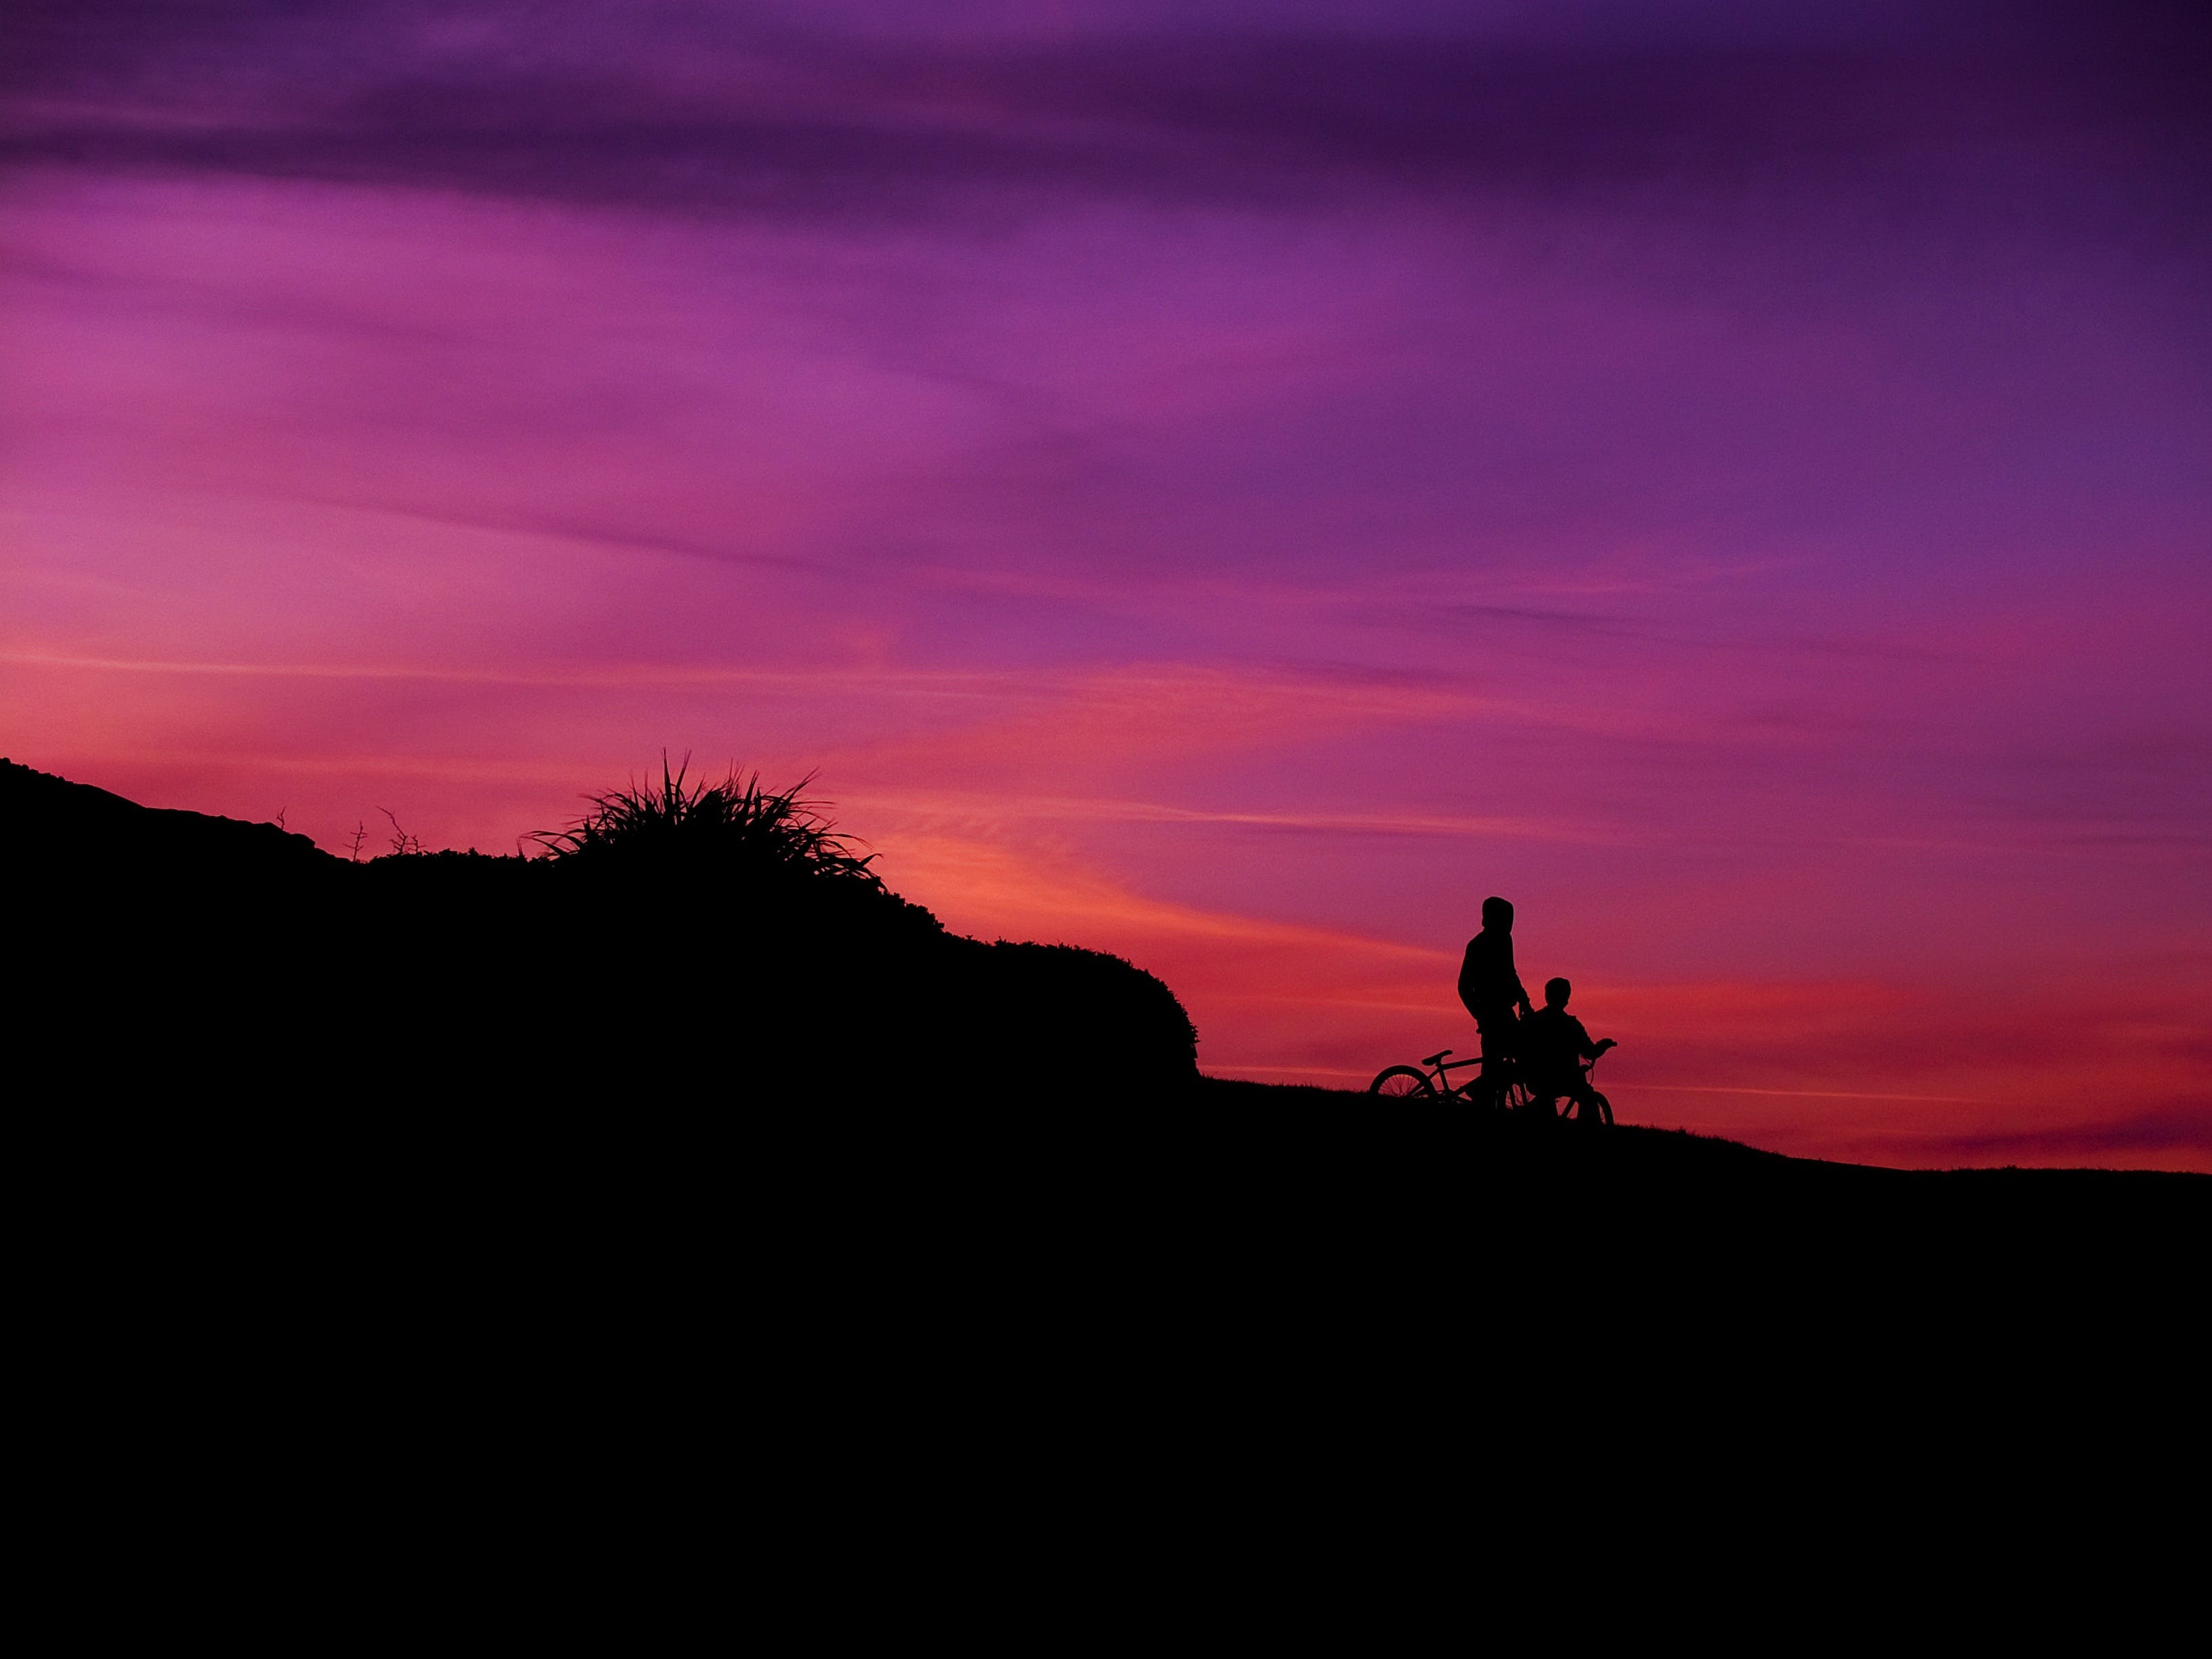 Bikers on Slope Silhouette during Sunset